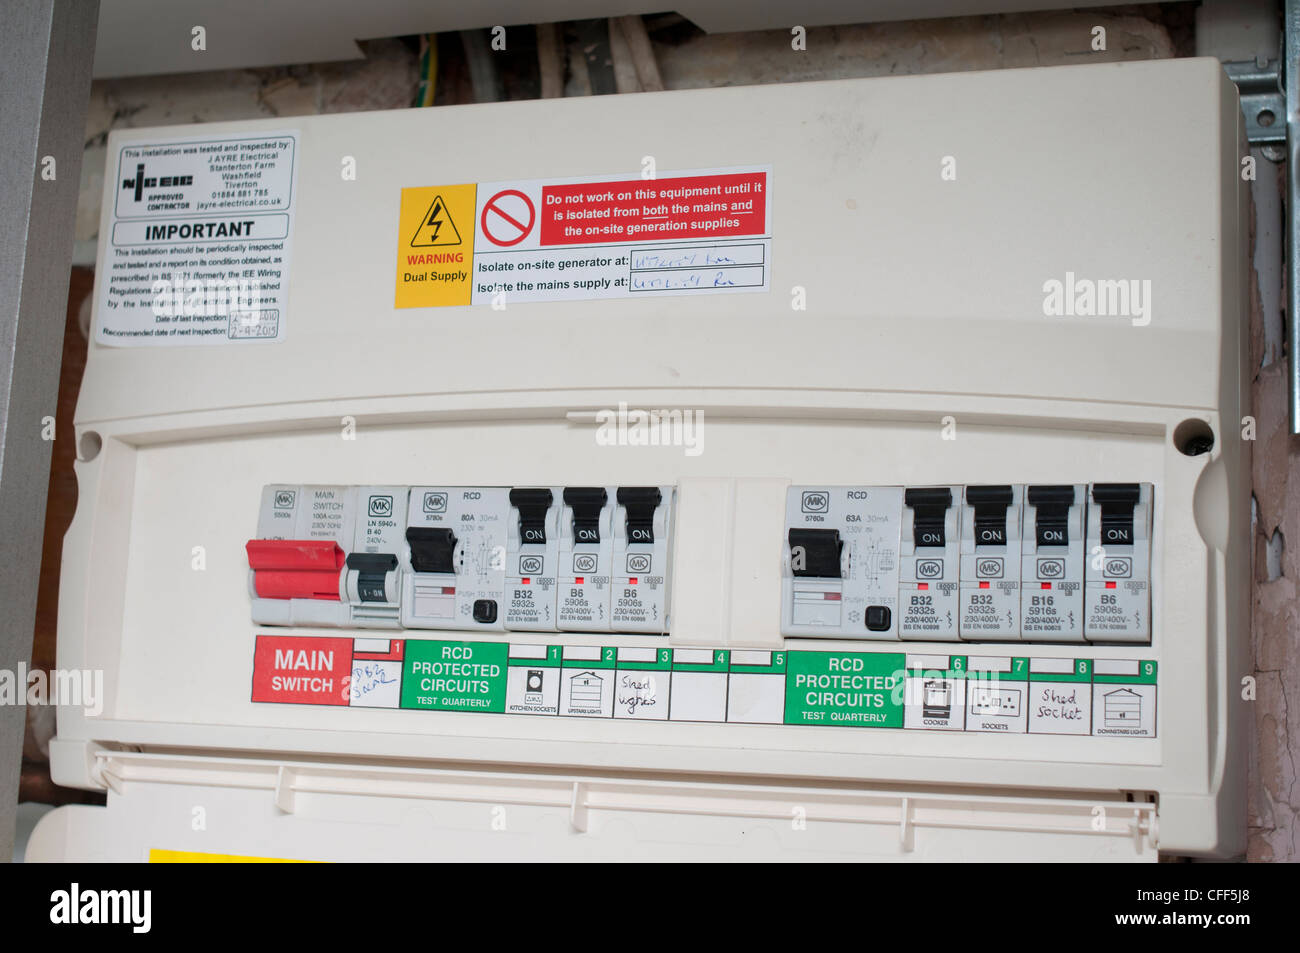 domestic fuse box CFF5J8 fuse box in house how to change a fuse in a breaker box \u2022 wiring  at bayanpartner.co